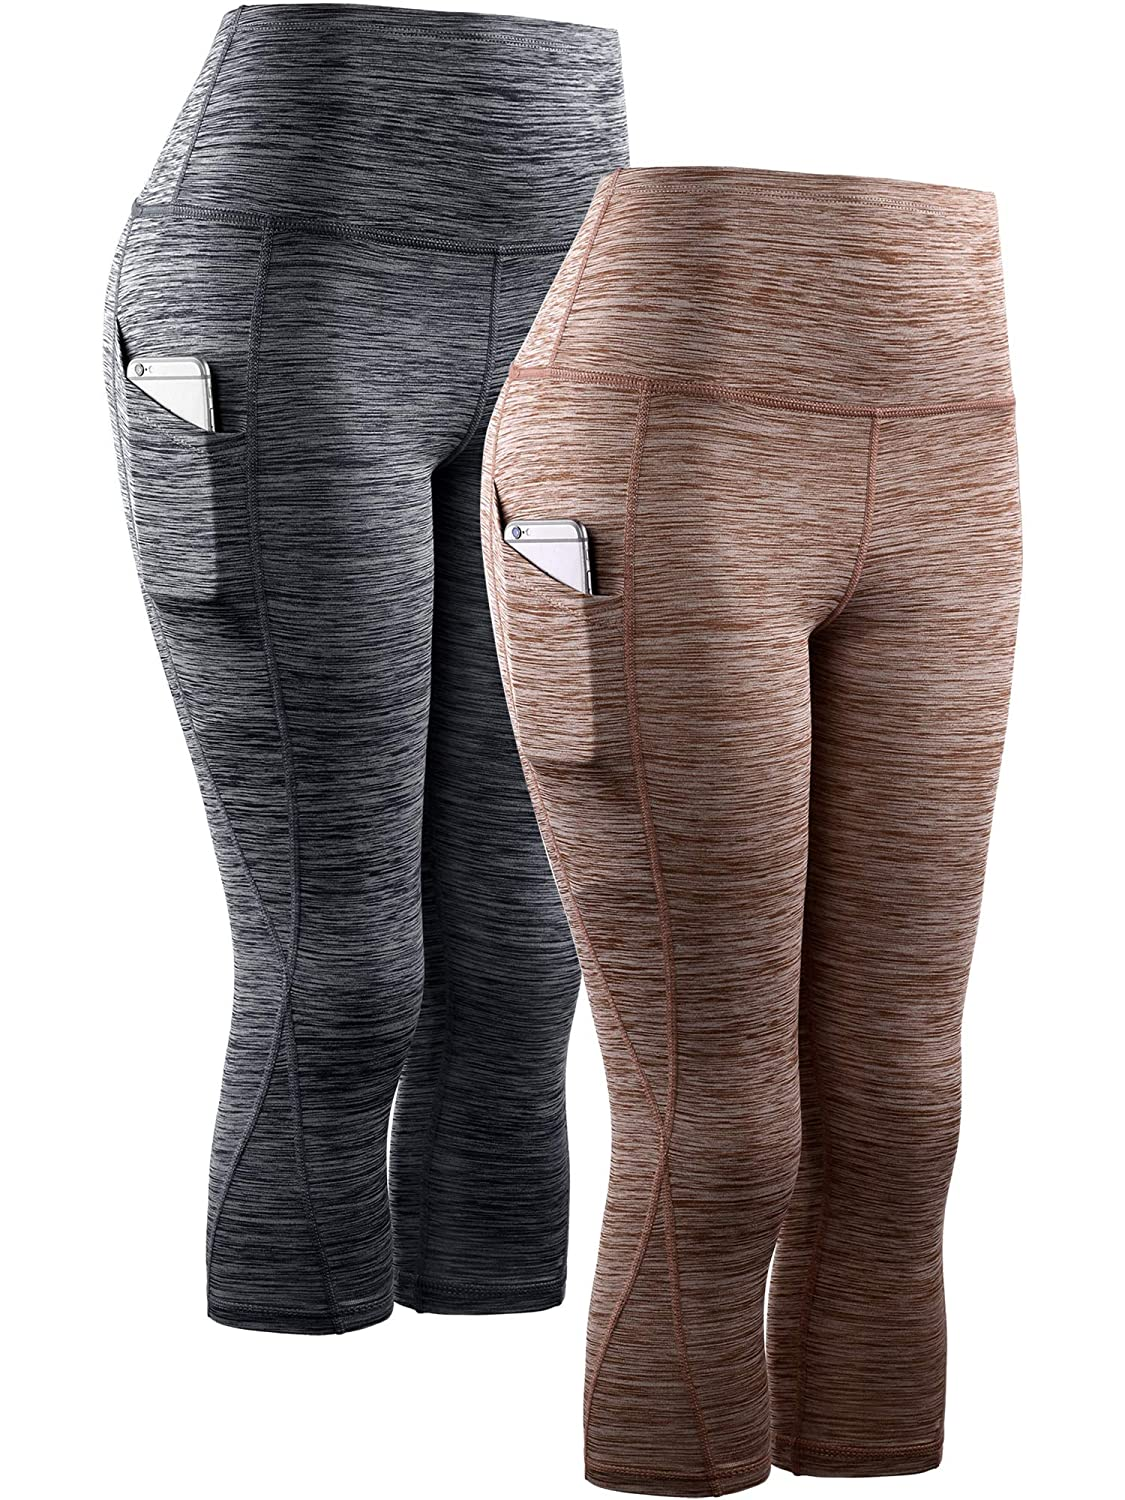 9034 Black Brown,2 Pack Neleus High Waist Running Workout Leggings for Yoga with Pockets